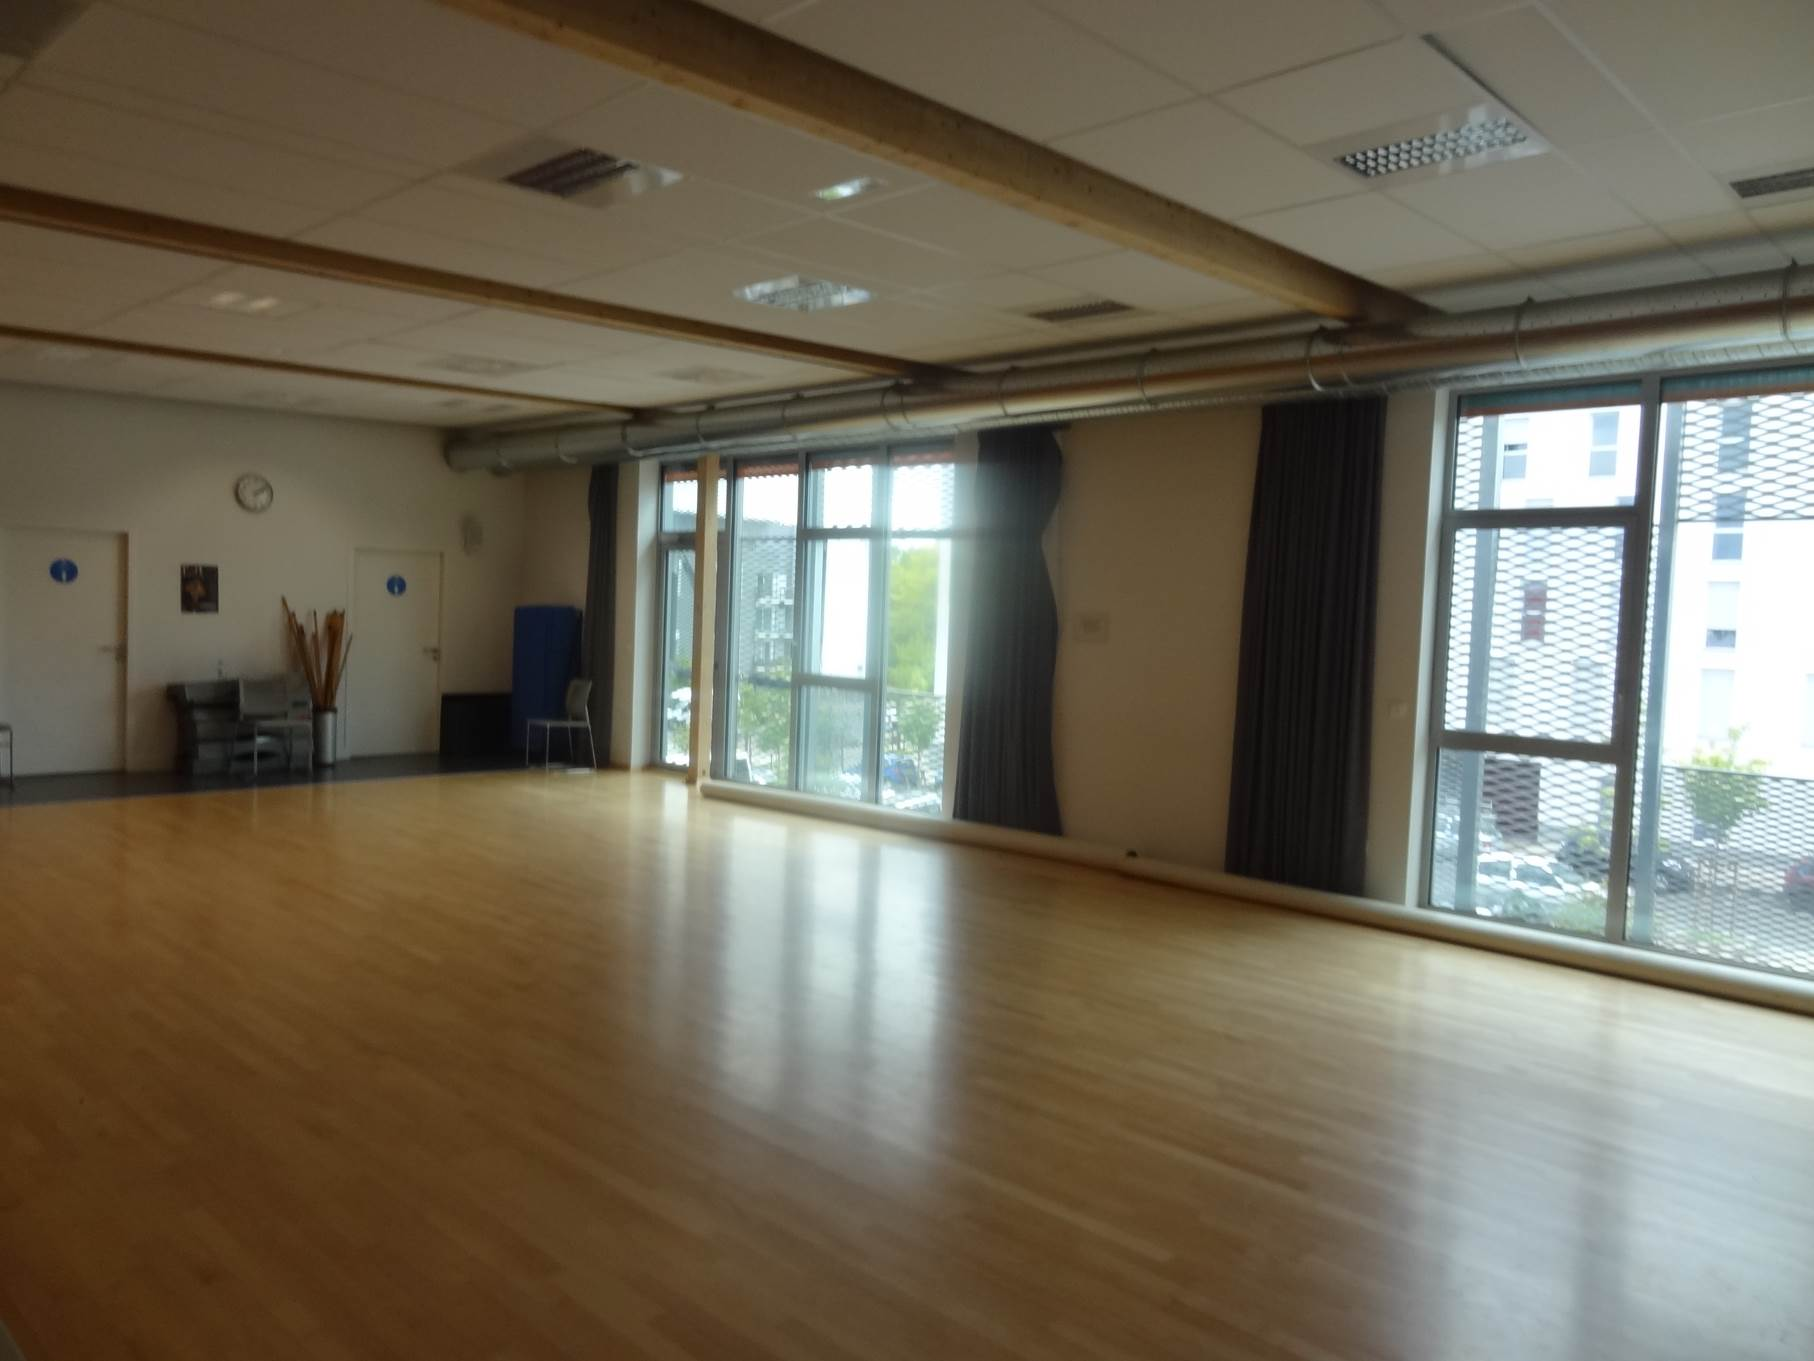 Salle de danse photo 4